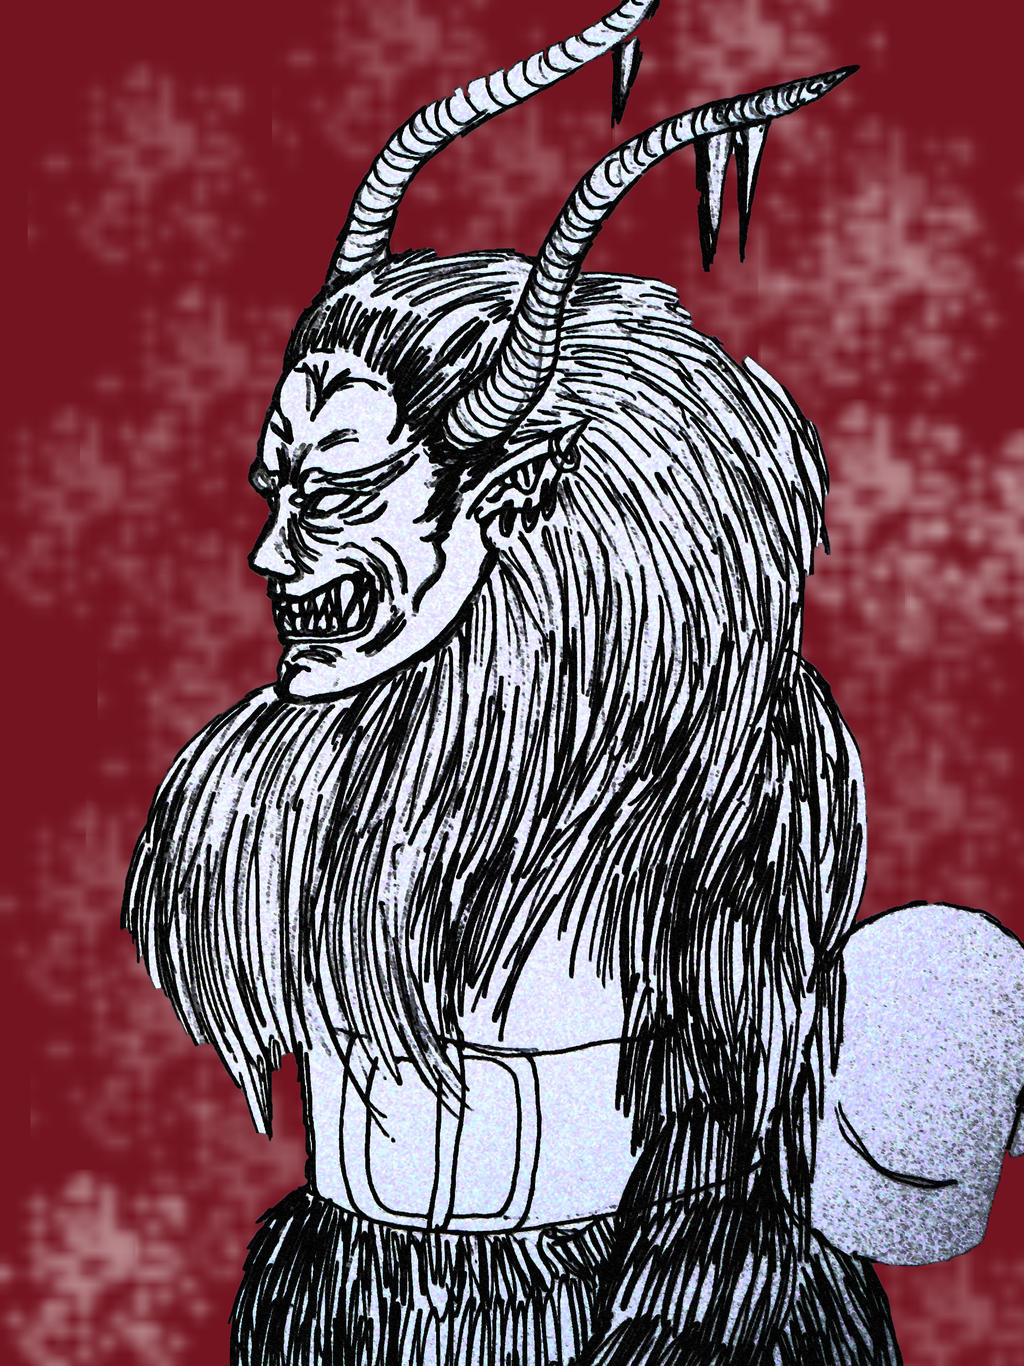 Greetings from Krampus 2 by chaosqueen122